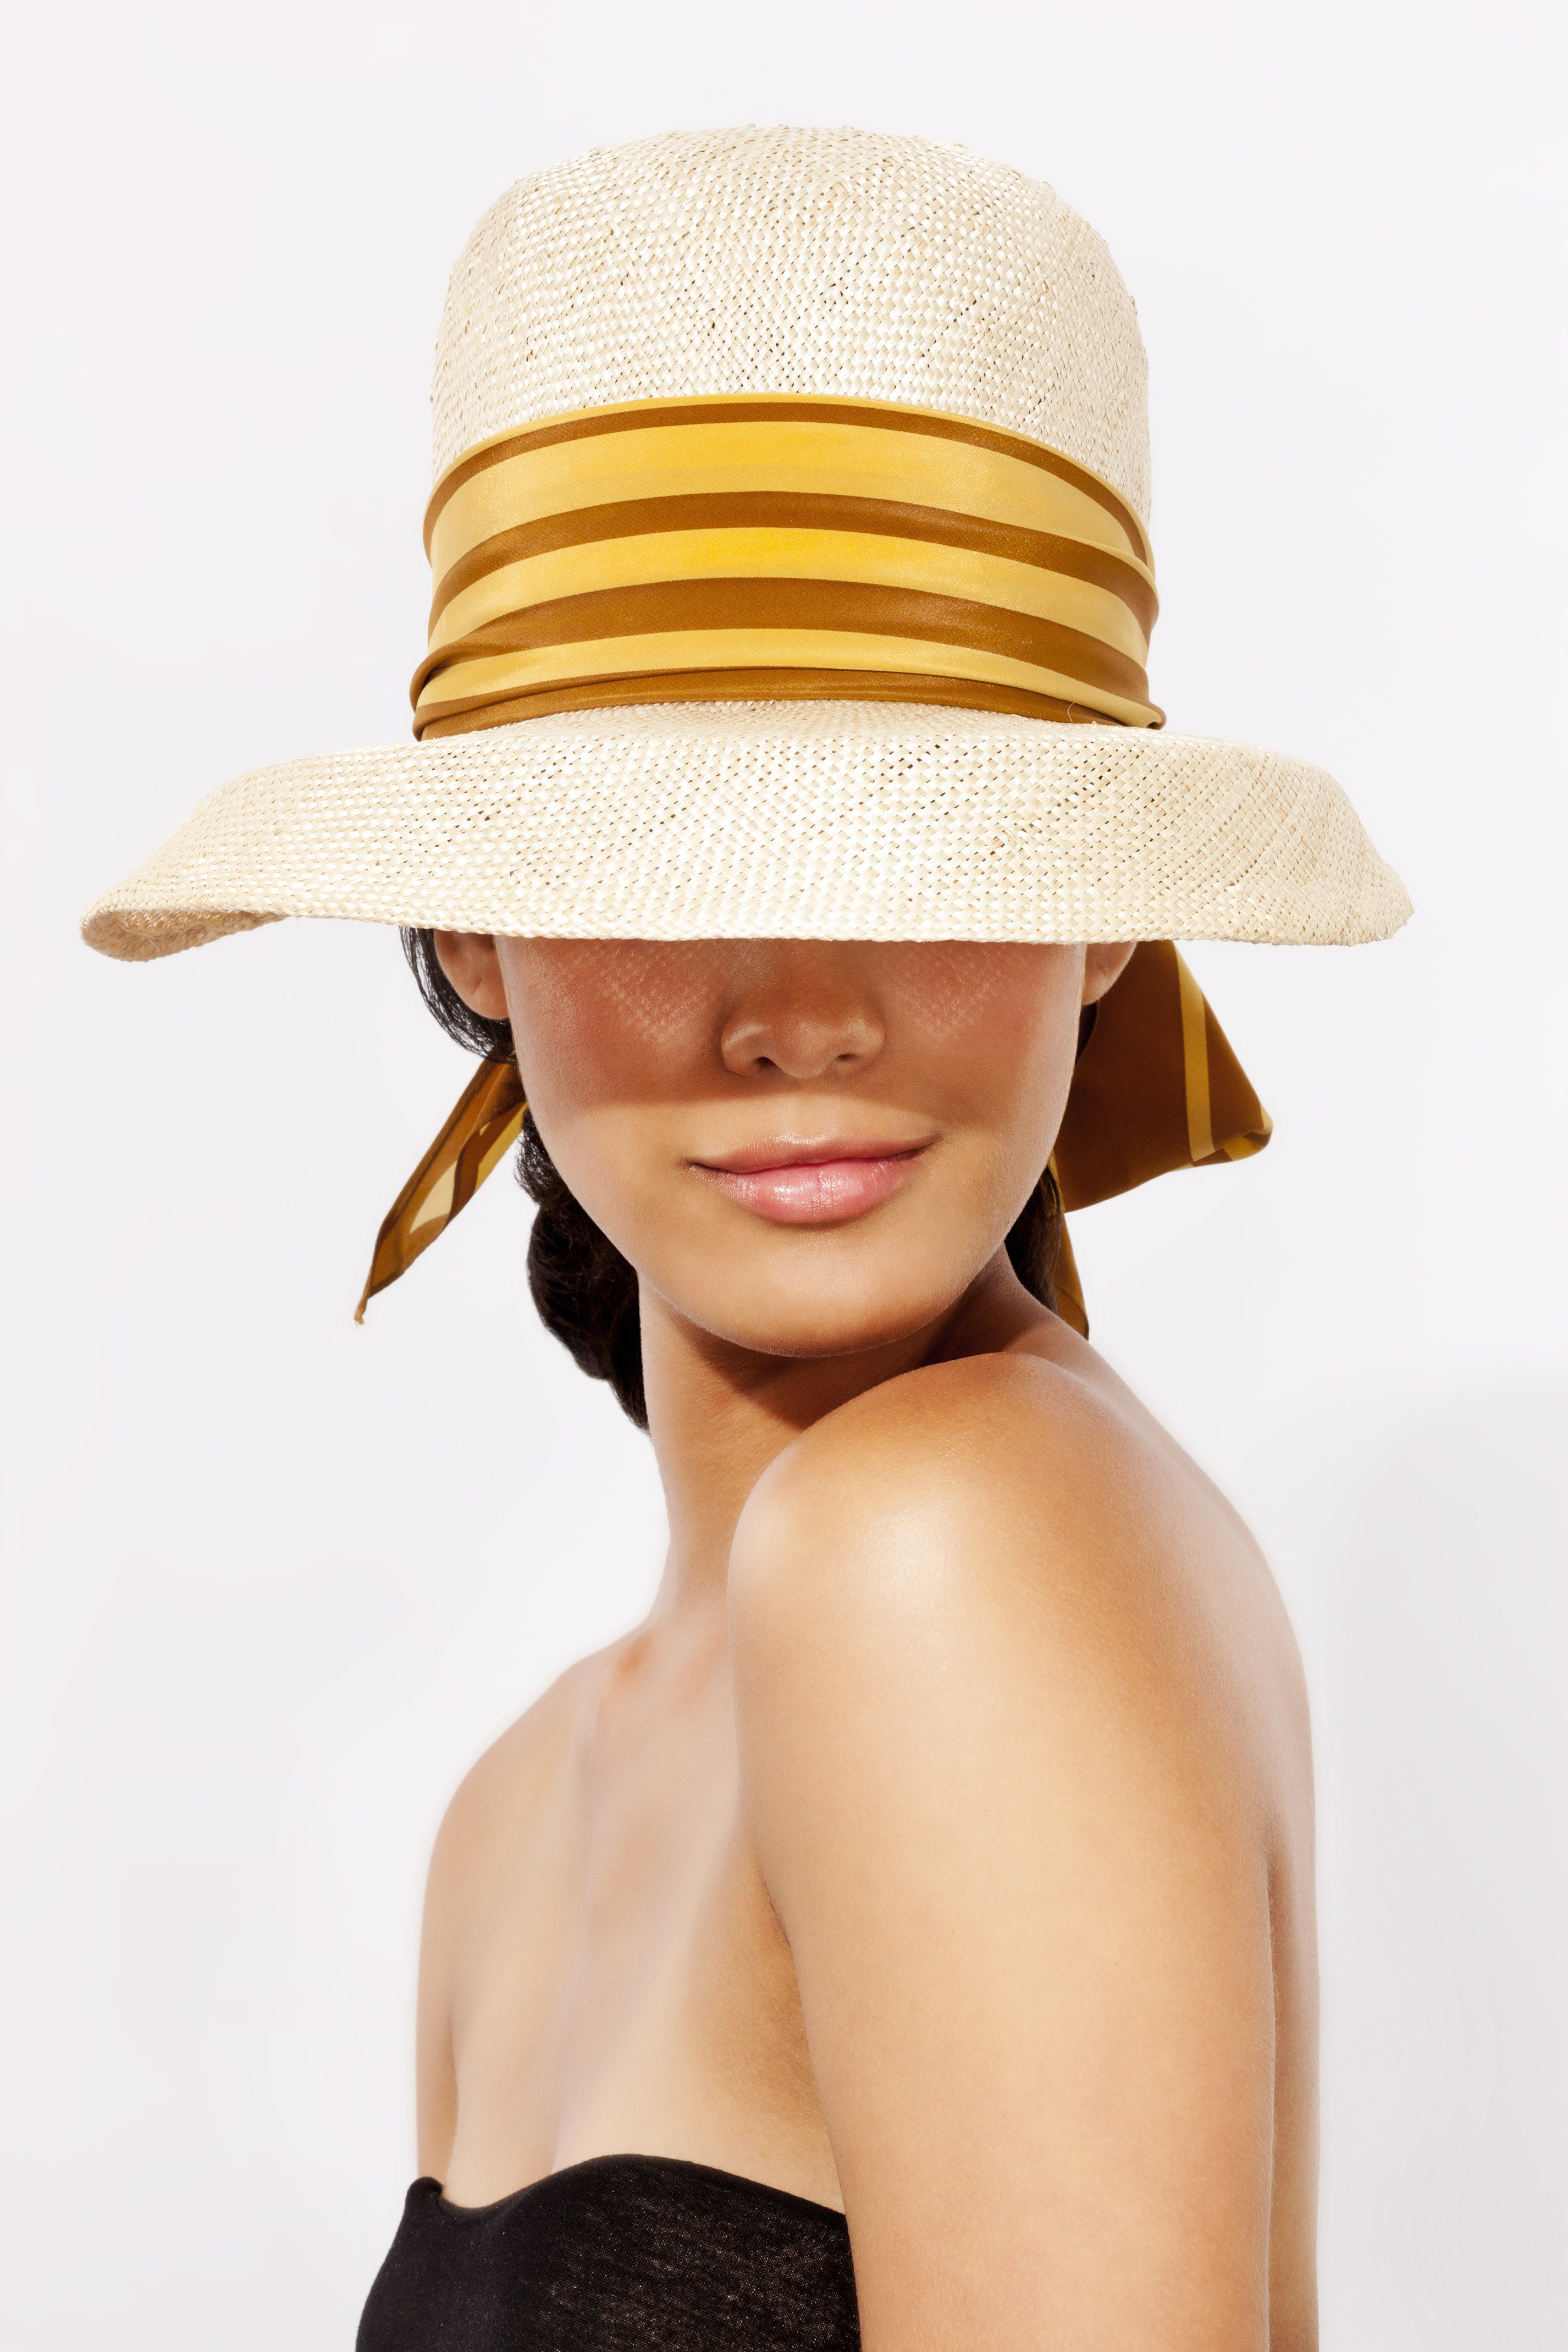 The 9 Most Common Sunscreen Mistakes | Allure